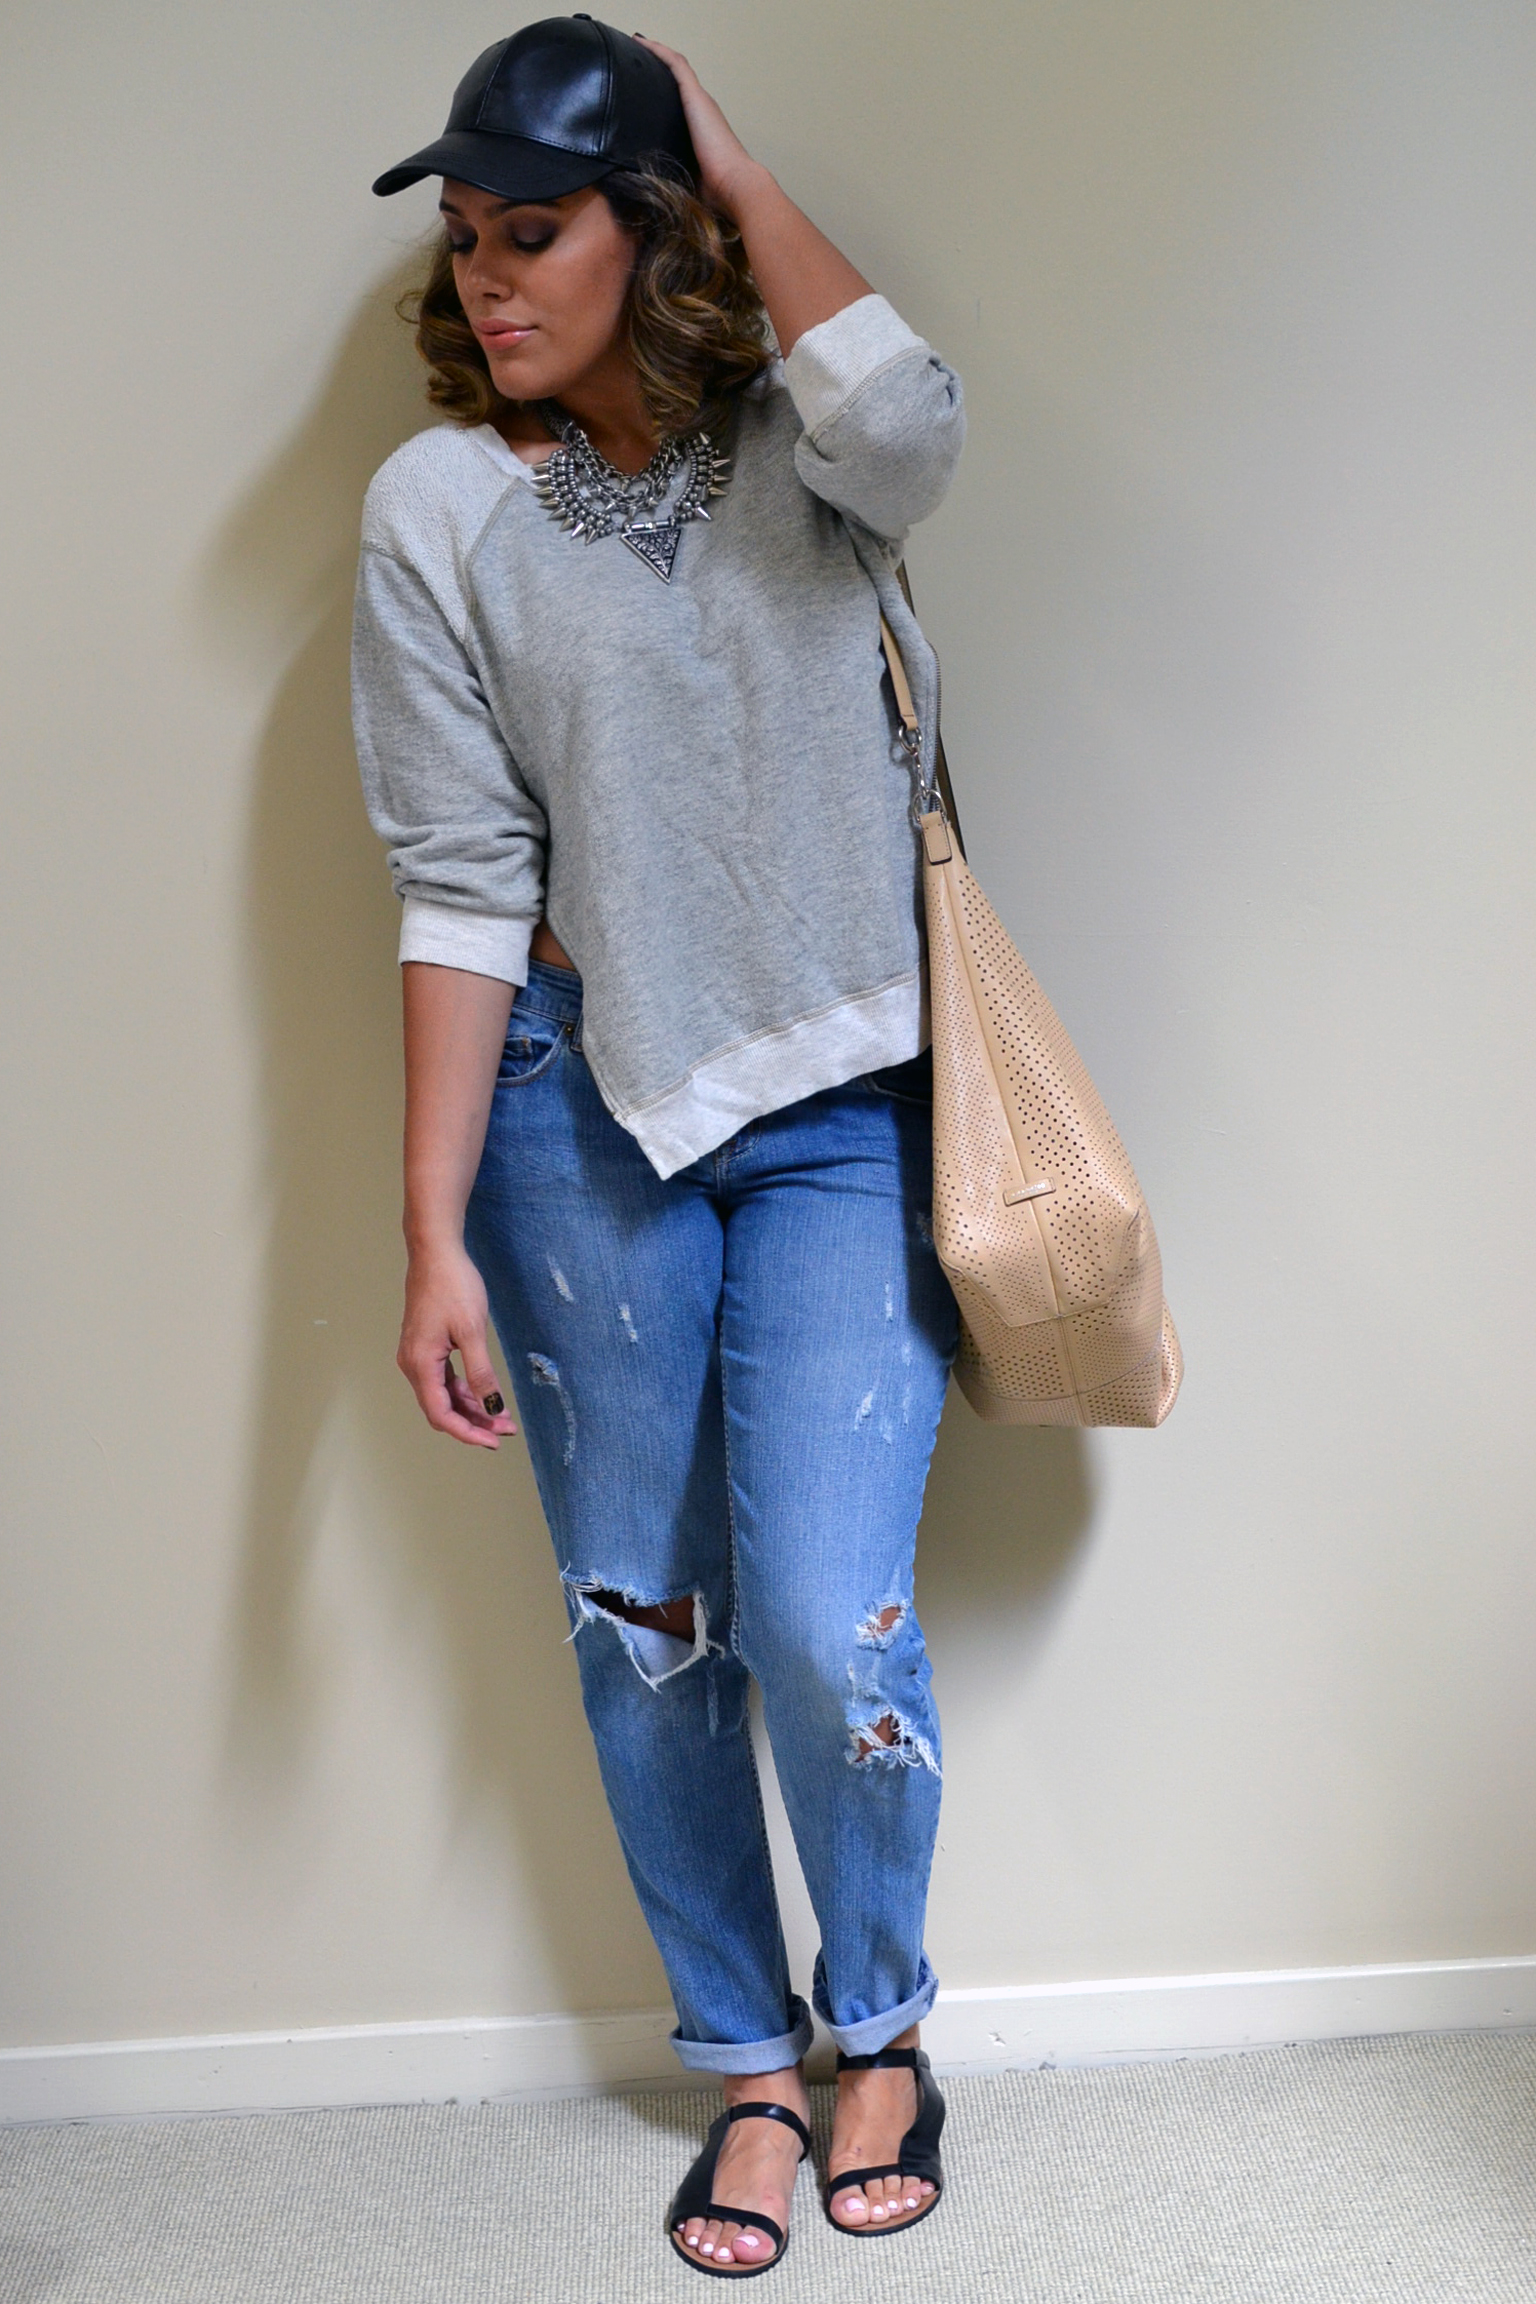 how-to-summer-to-fall-fashion-wardrobe-boyfriend-jeans-sweatshirt-leather-hat-back-to-school-style-30-days-of-style.jpg